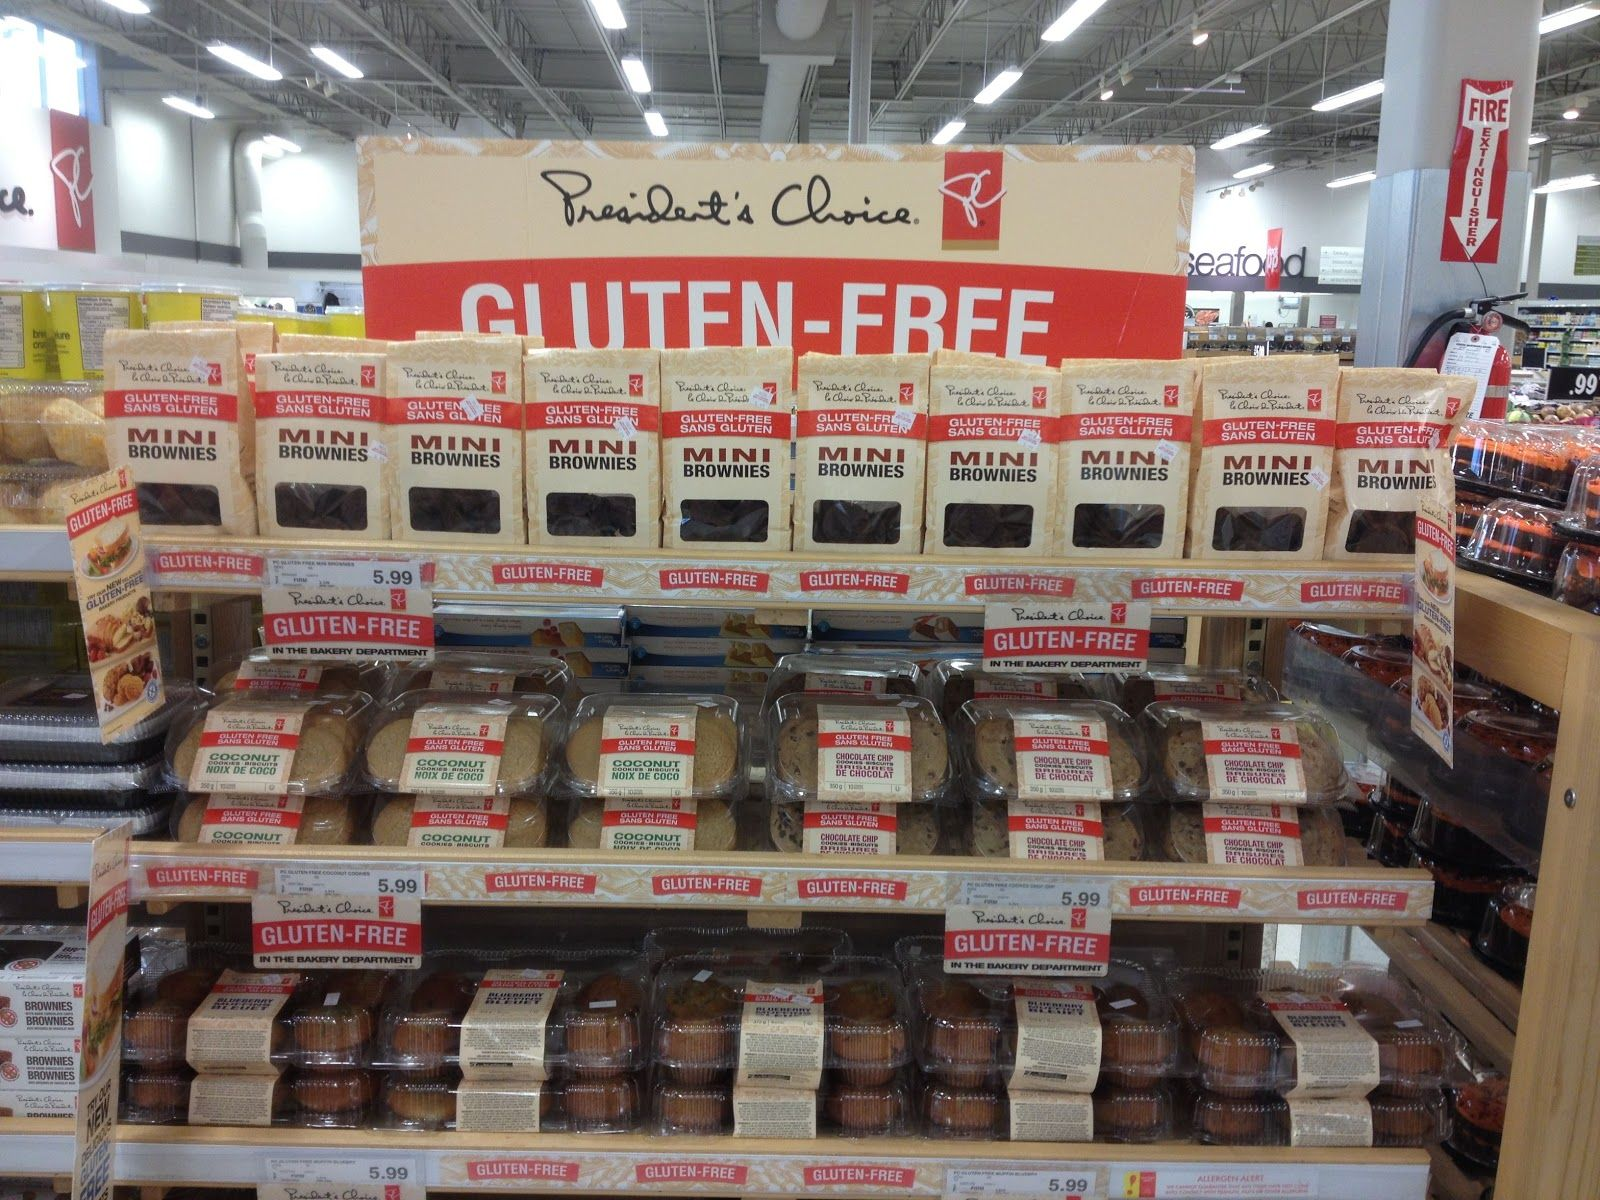 President's Choice Introduces Gluten Free Bakery to